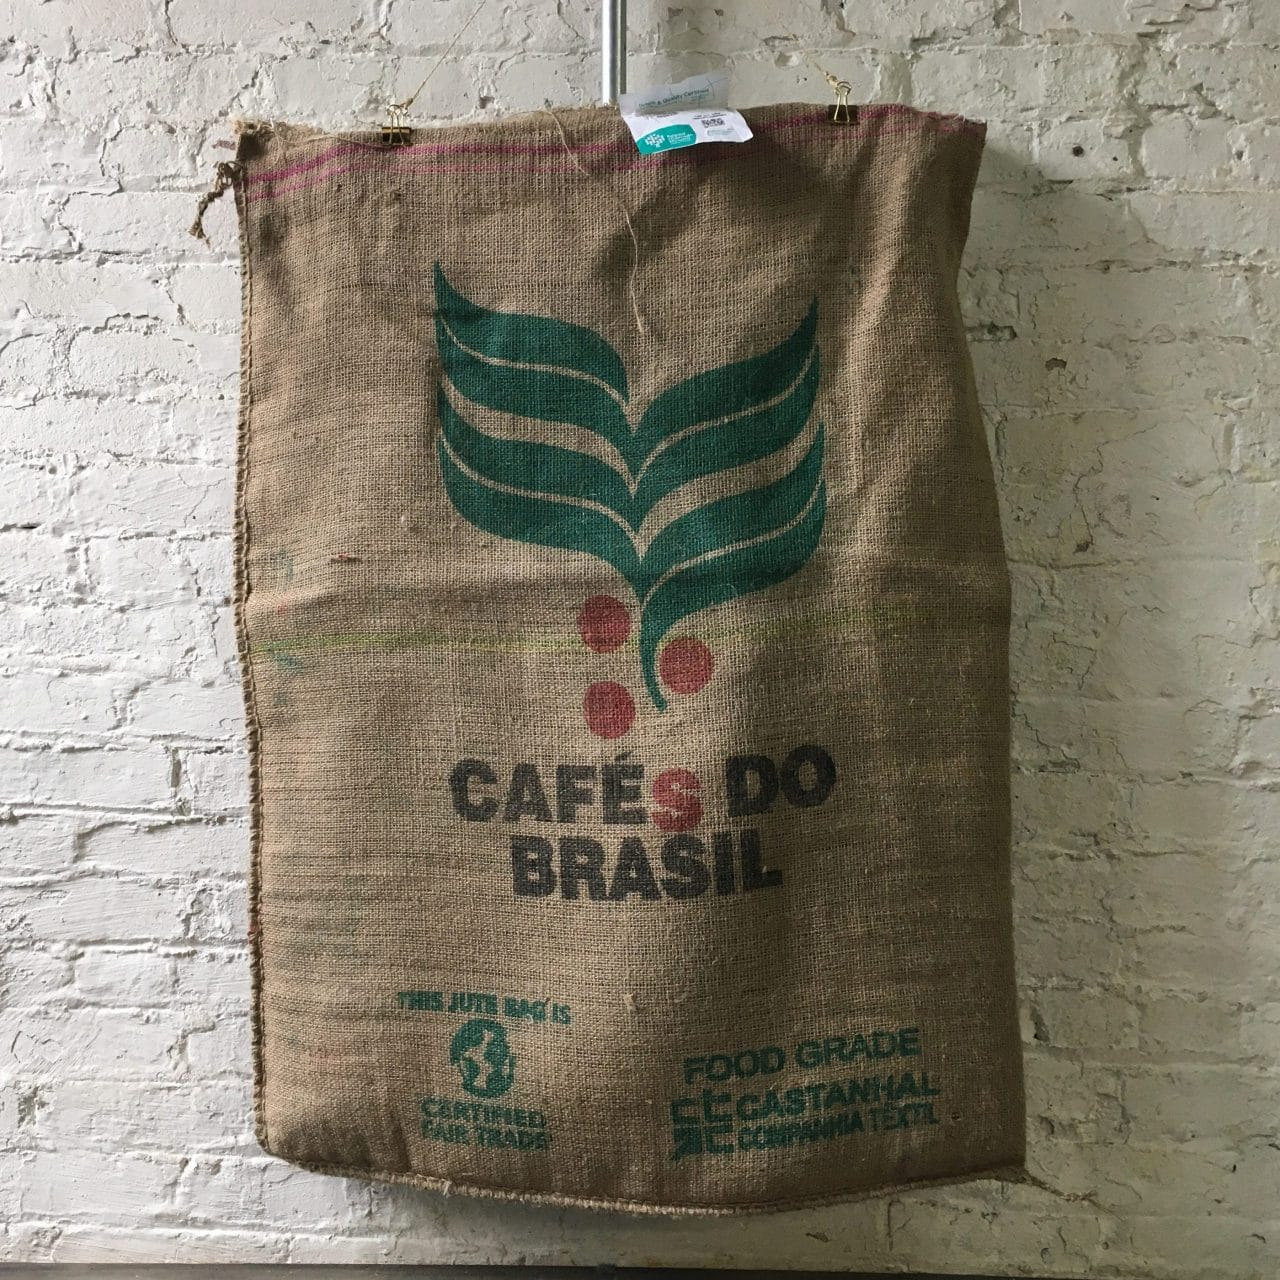 Oberon jute bag